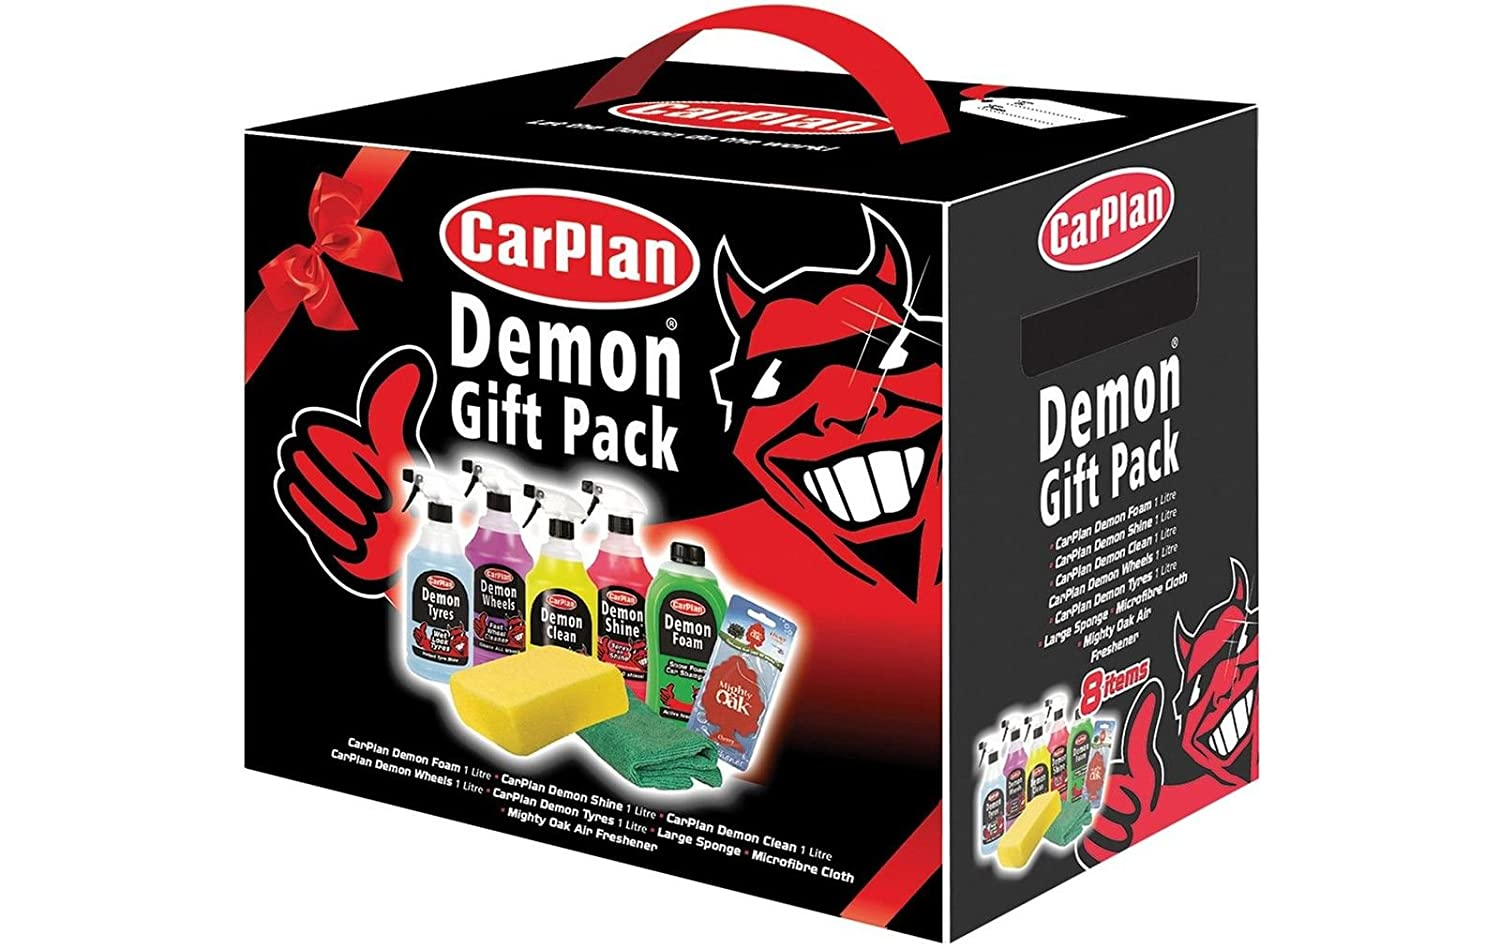 Carplan dgp001 demon gift pack 8 pieces car shampoo cleaner sponge carplan dgp001 demon gift pack 8 pieces car shampoo cleaner sponge air freshener amazon car motorbike negle Images